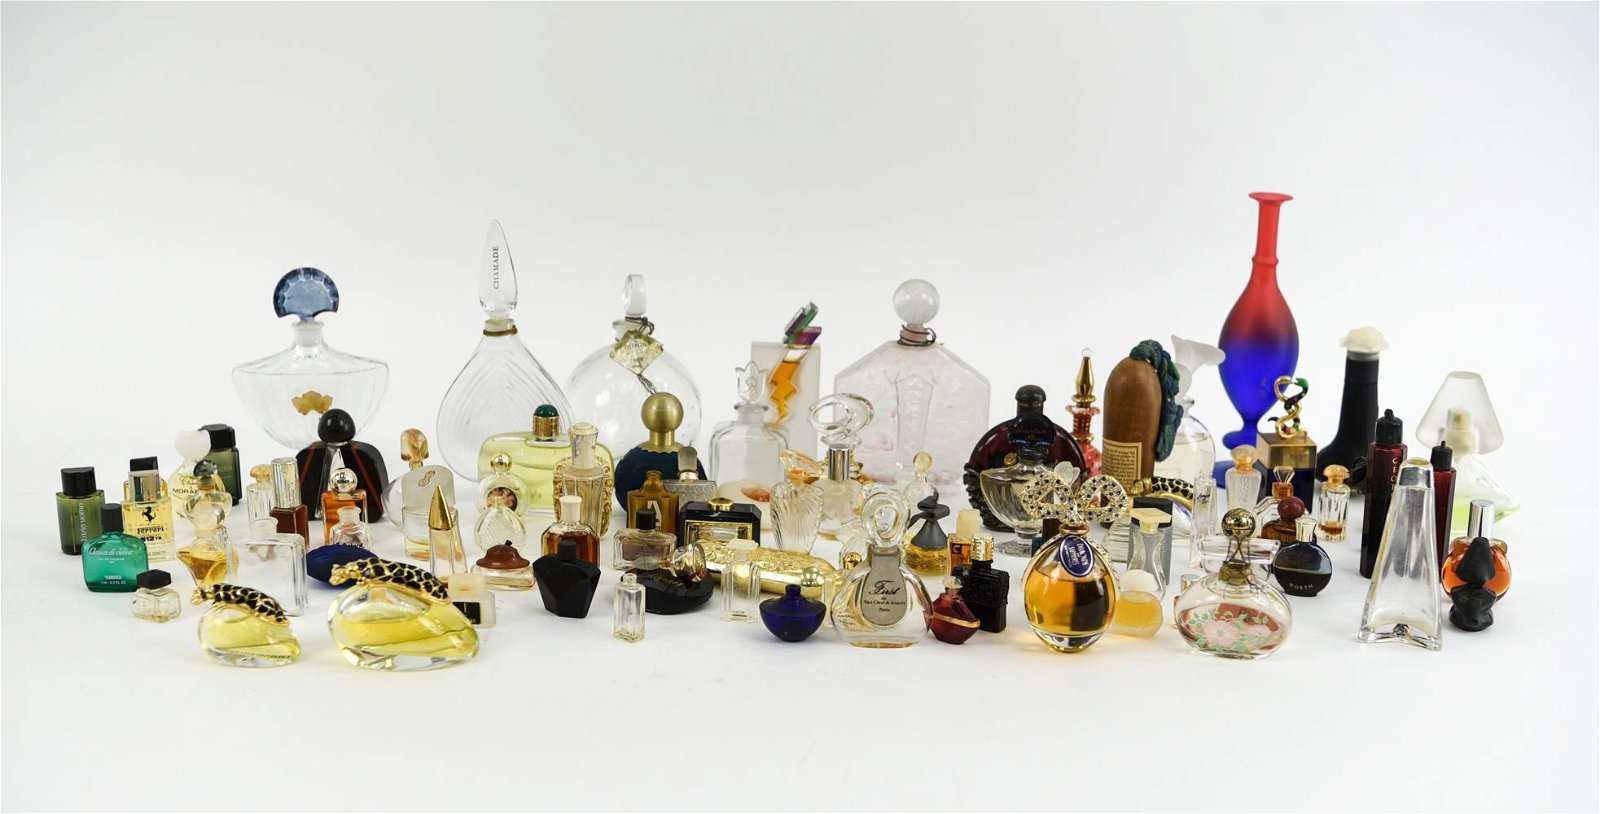 LARGE GROUP OF ANTIQUE/VINTAGE PERFUME BOTTLES